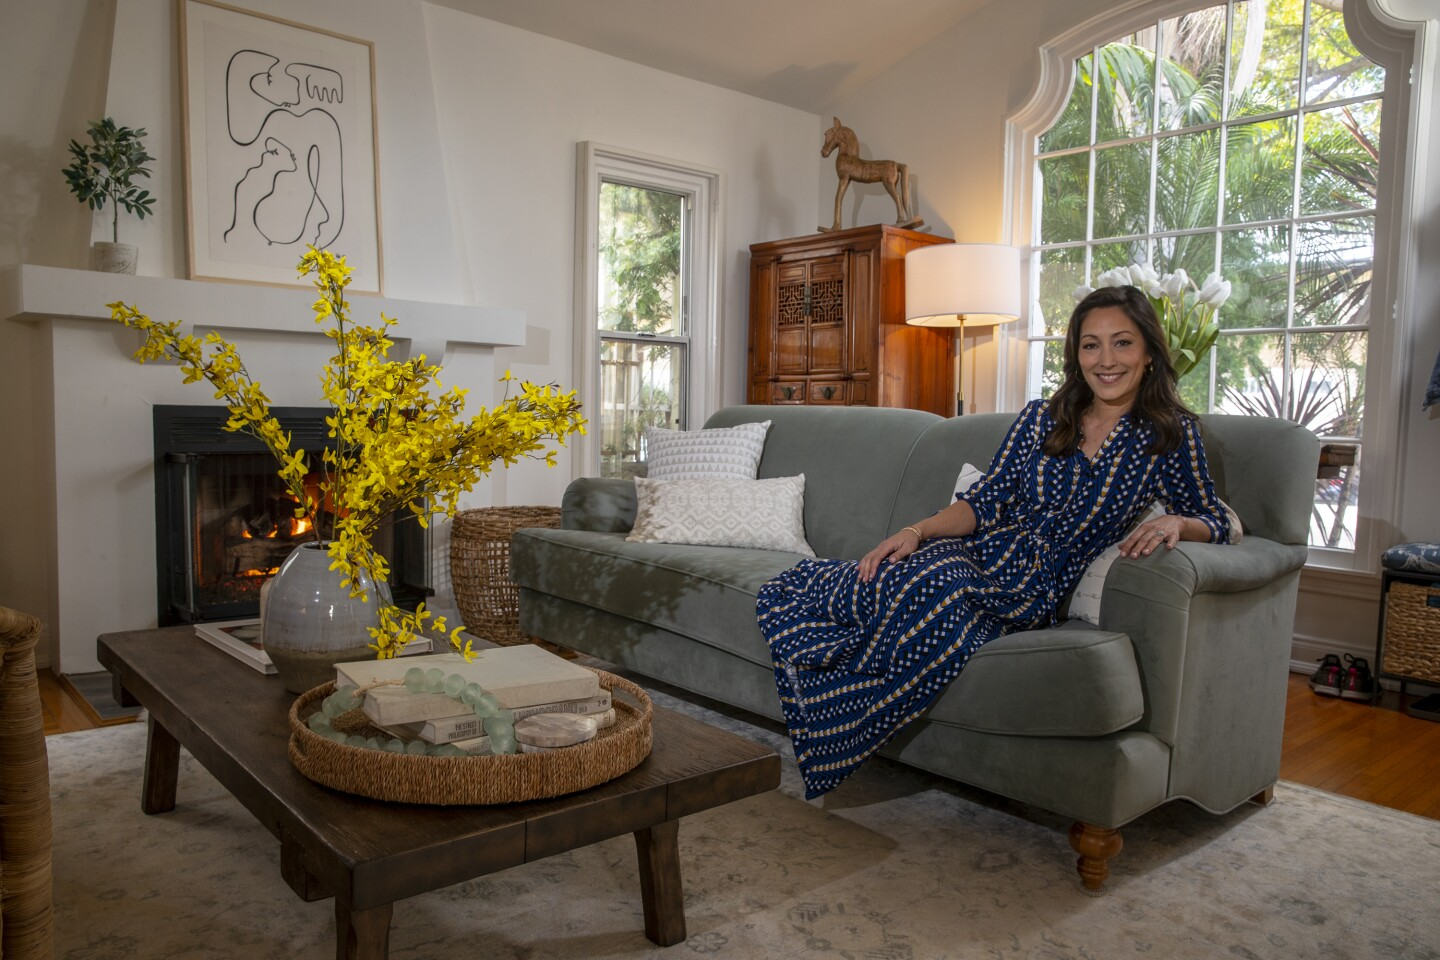 """WEST HOLLYWOOD, CA, FRIDAY, JANUARY 17, 2020 - Actress Christina Chang and her favorite room. She plays Dr. Audry Lim in ABC's """"The Good Doctor."""" (Robert Gauthier/Los Angeles Times)"""